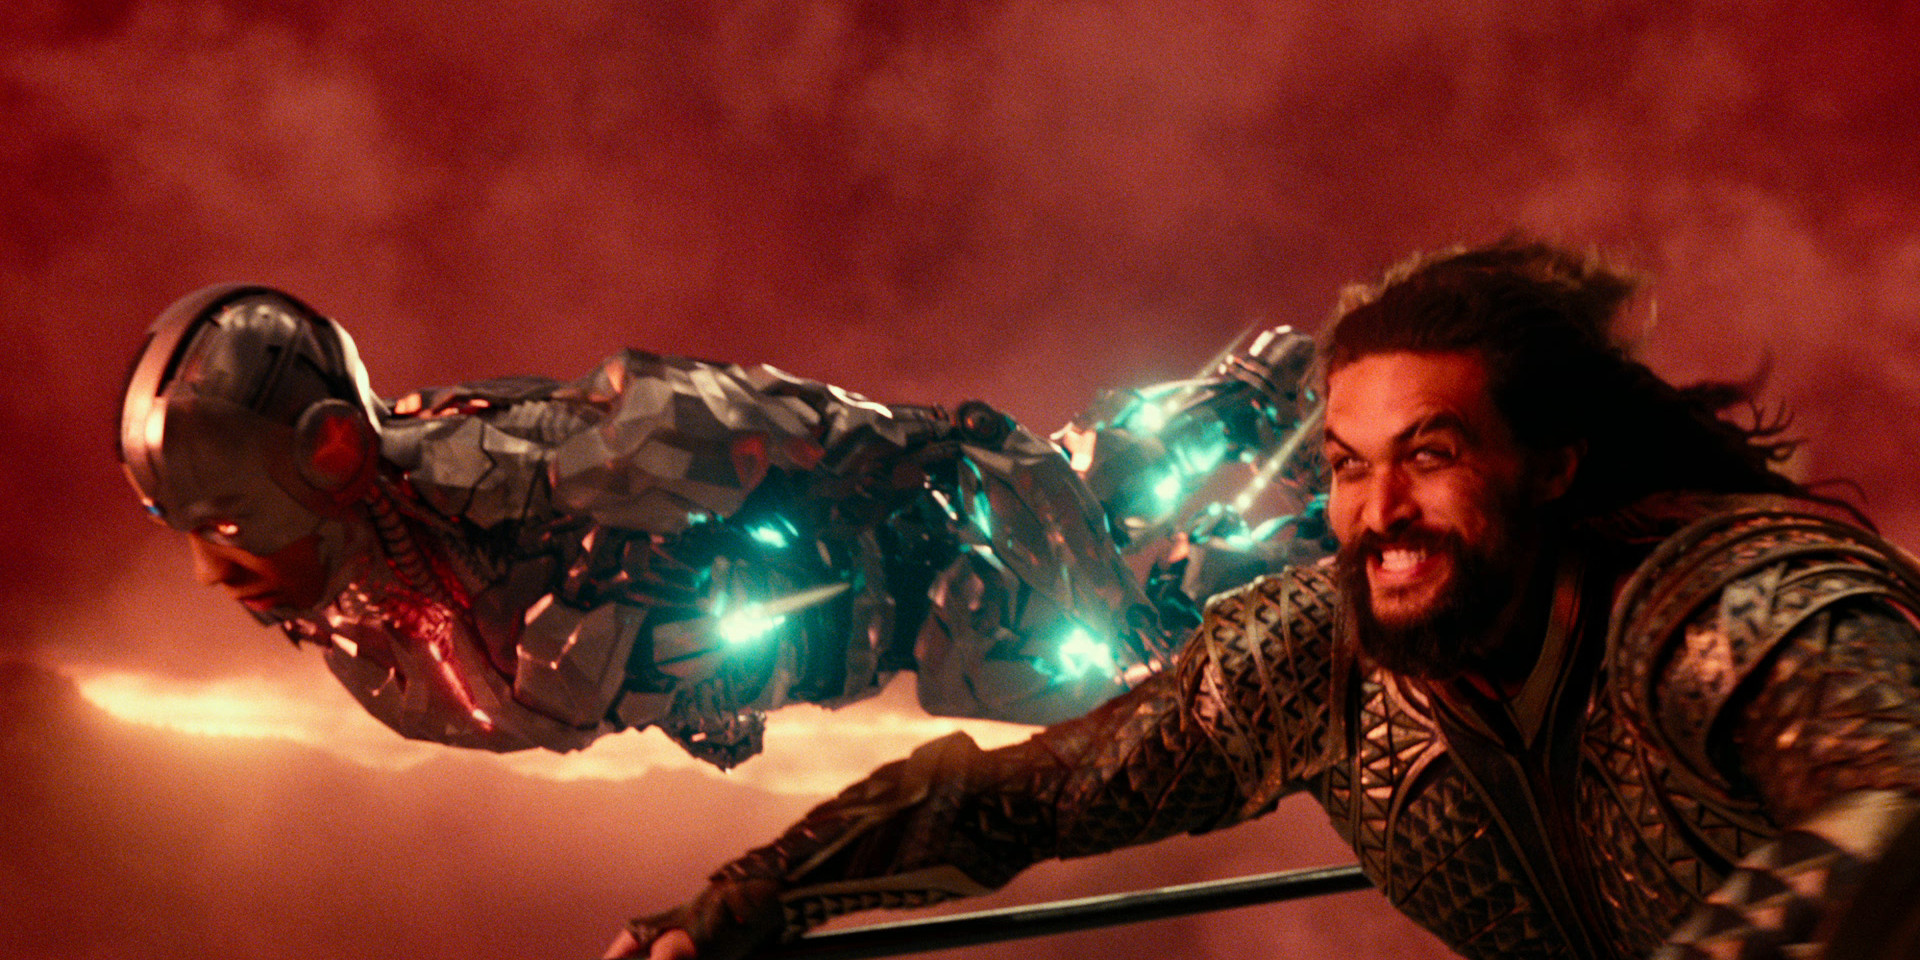 Cyborg and Aquaman in Justice League